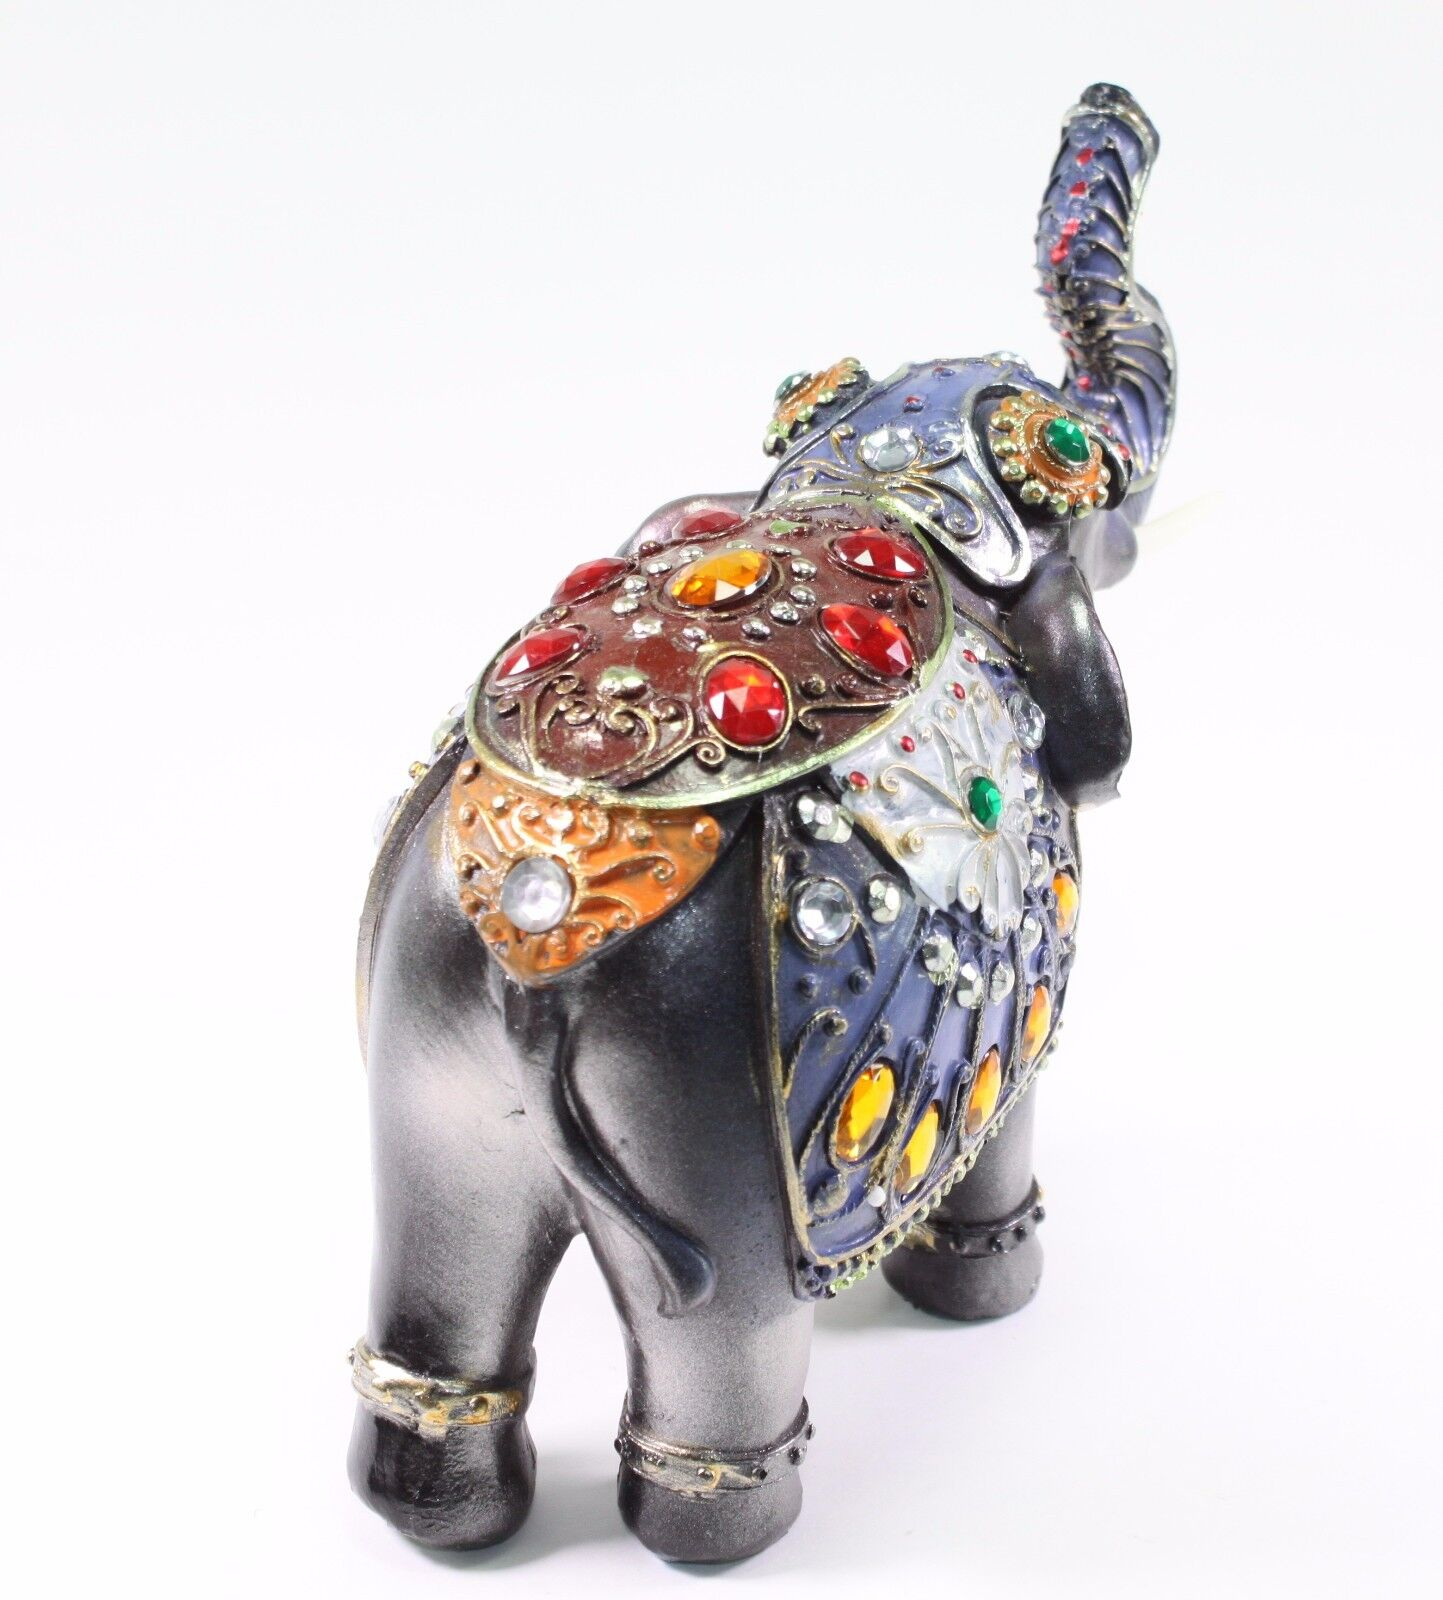 feng shui 7 dark gray elephant trunk statue lucky figurine gift home decor. Black Bedroom Furniture Sets. Home Design Ideas